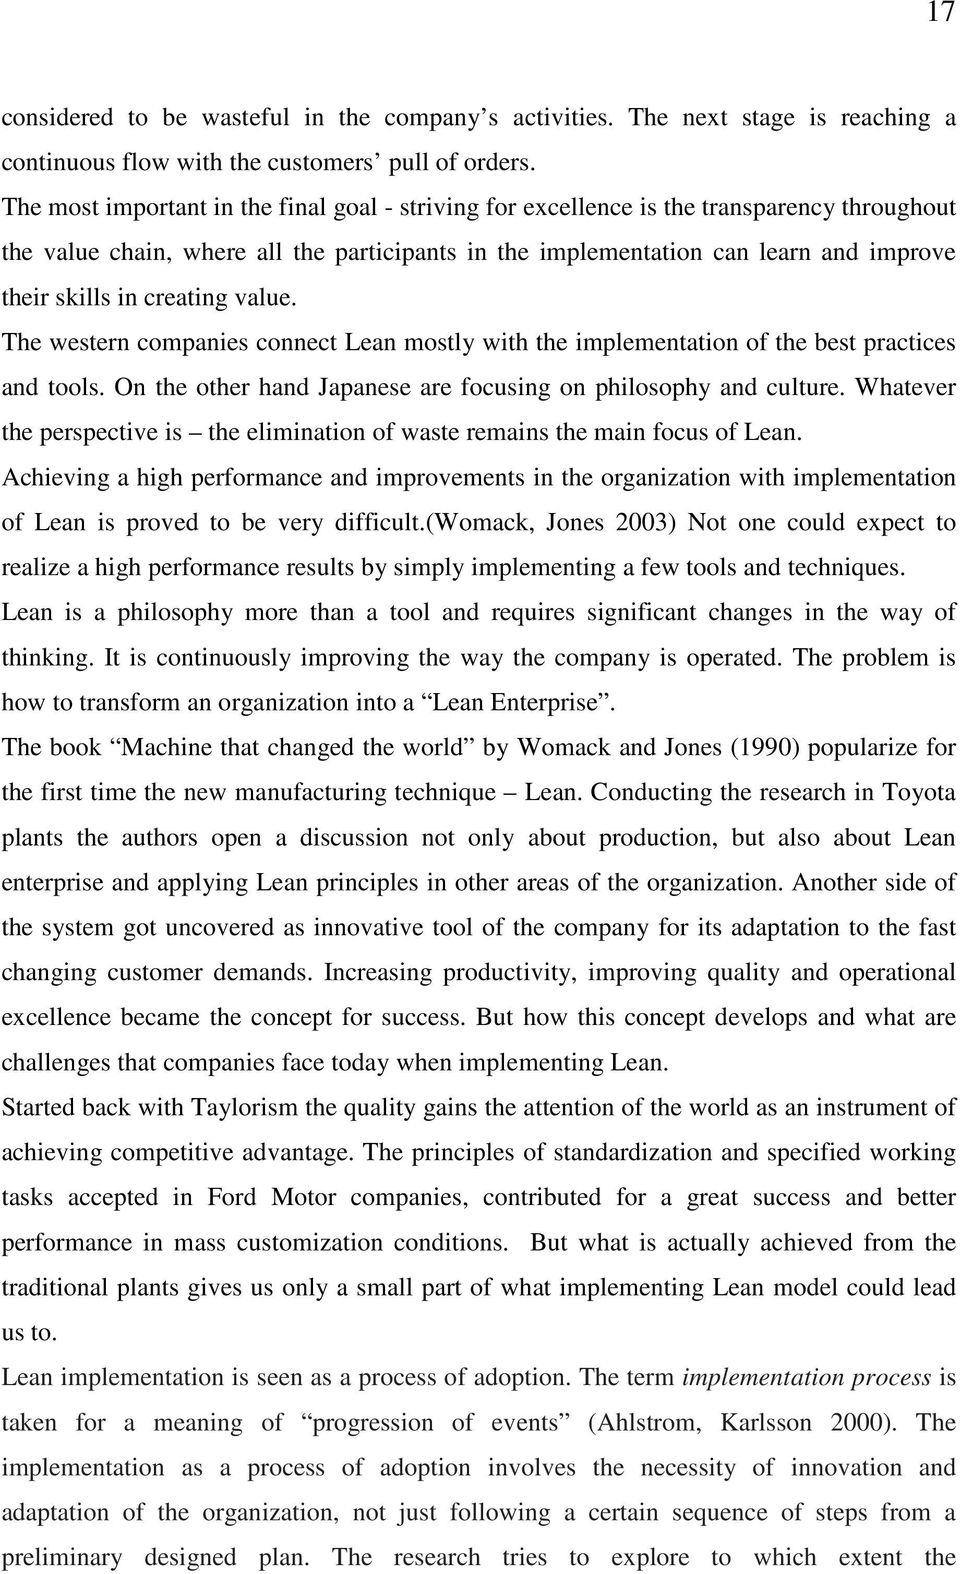 """lean thesis • compare and contrast the two approaches that you select- focus on what is """"similar"""" and what is """"different"""" between the two approaches • describe what unique contributions to quality each of the two approaches bring."""